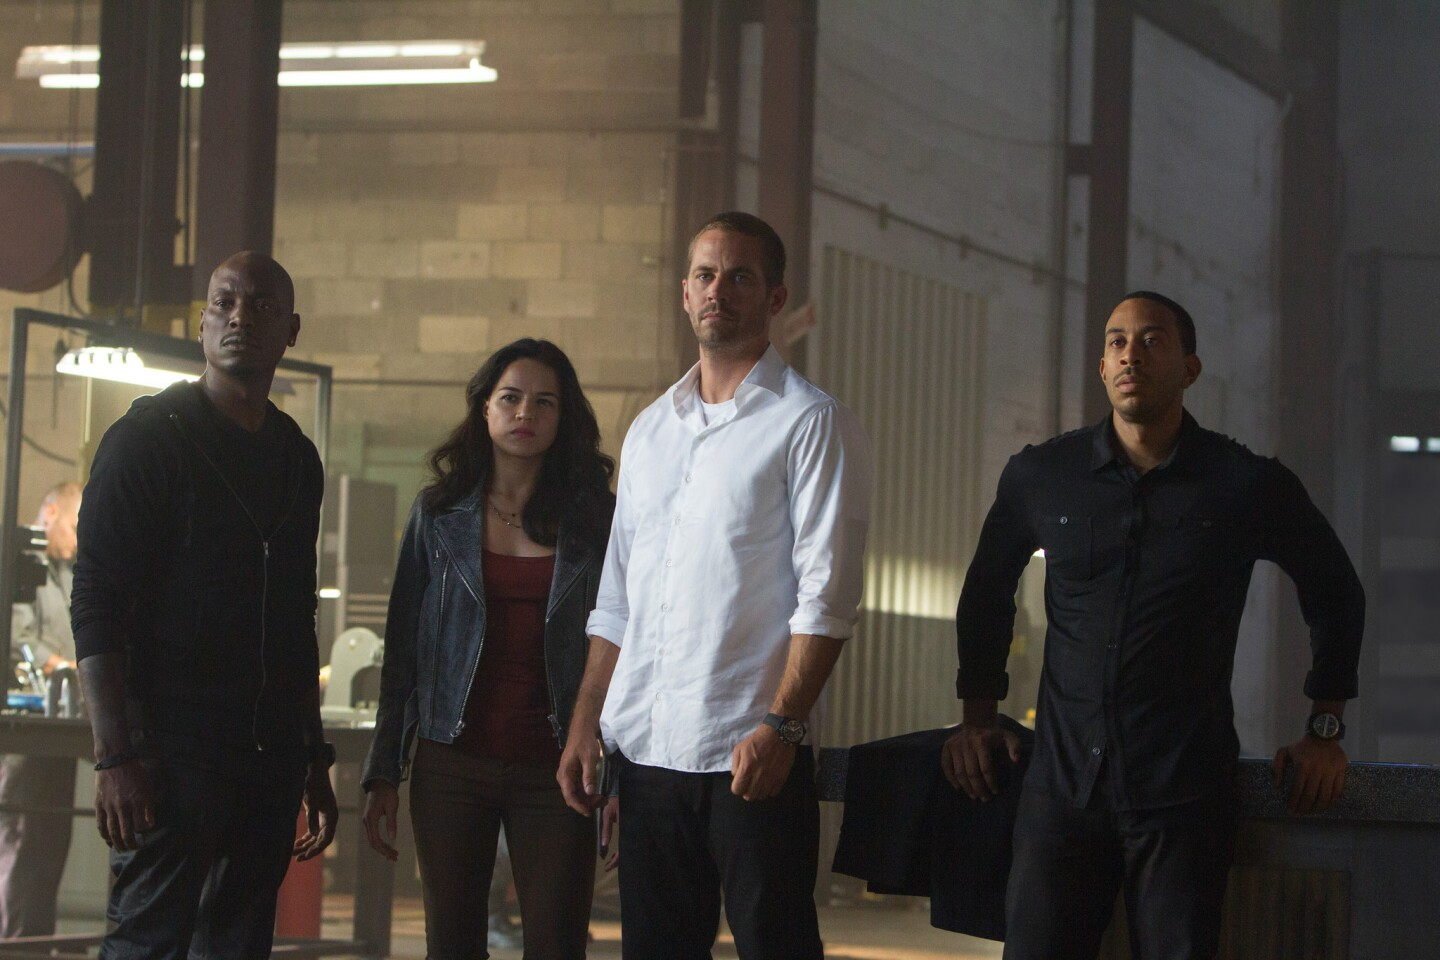 'Fast & Furious' at the box office